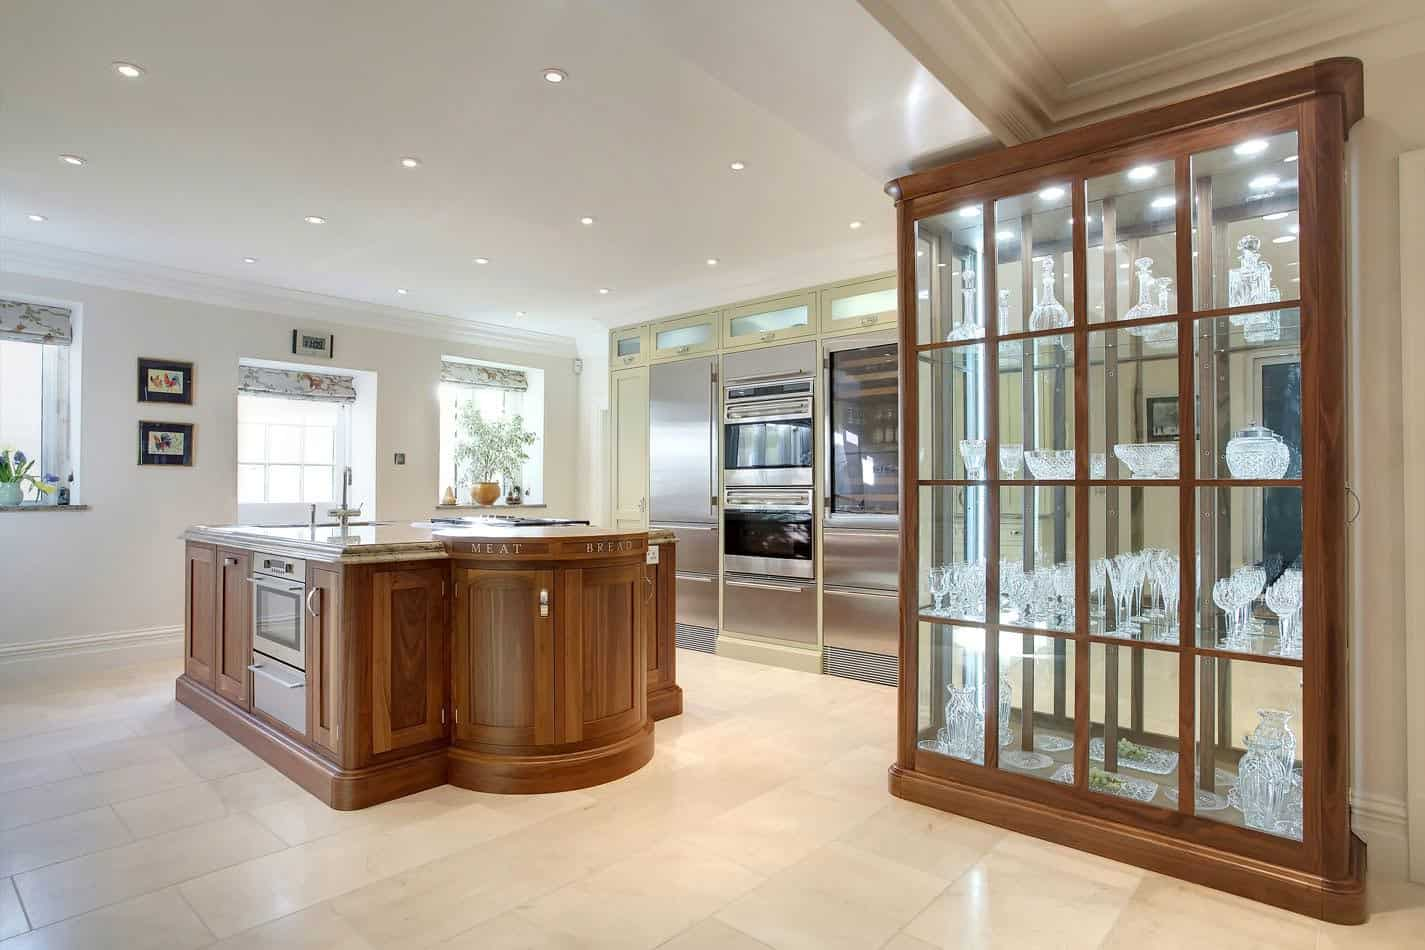 A spacious kitchen featuring a stunning glass cabinet with built-in lights, along with a large brown center island. The area is lighted by well-placed recessed ceiling lights.